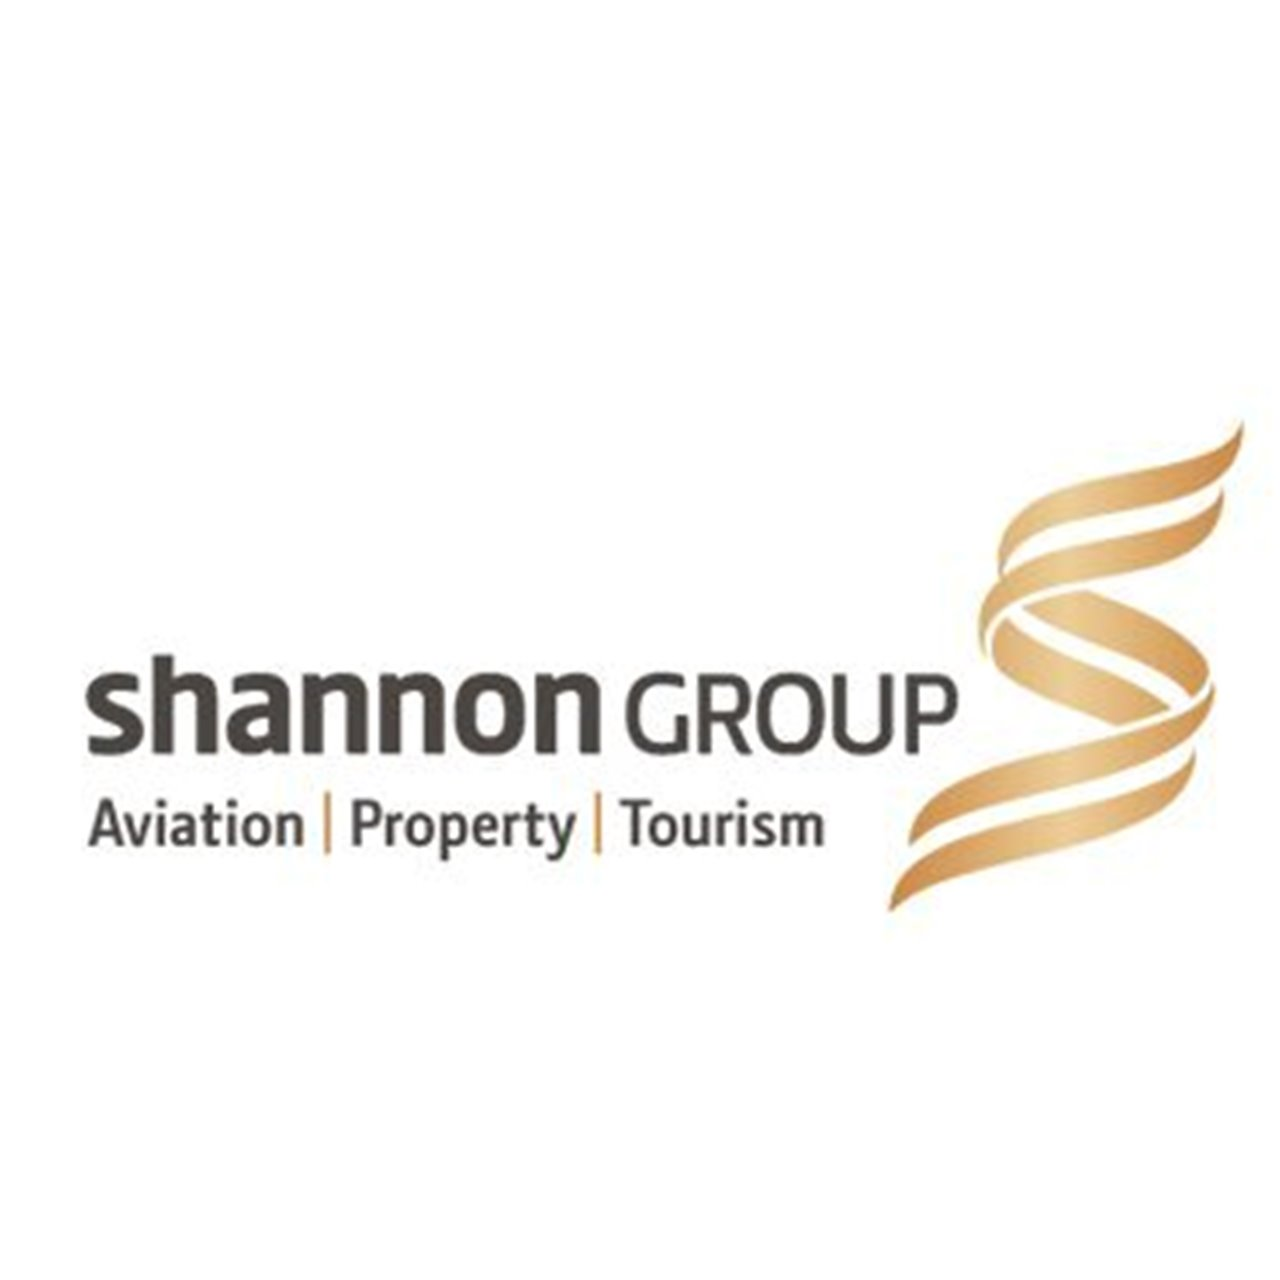 Shannon Group CEO welcomes US company Renovo to Shannon Free Zone Image